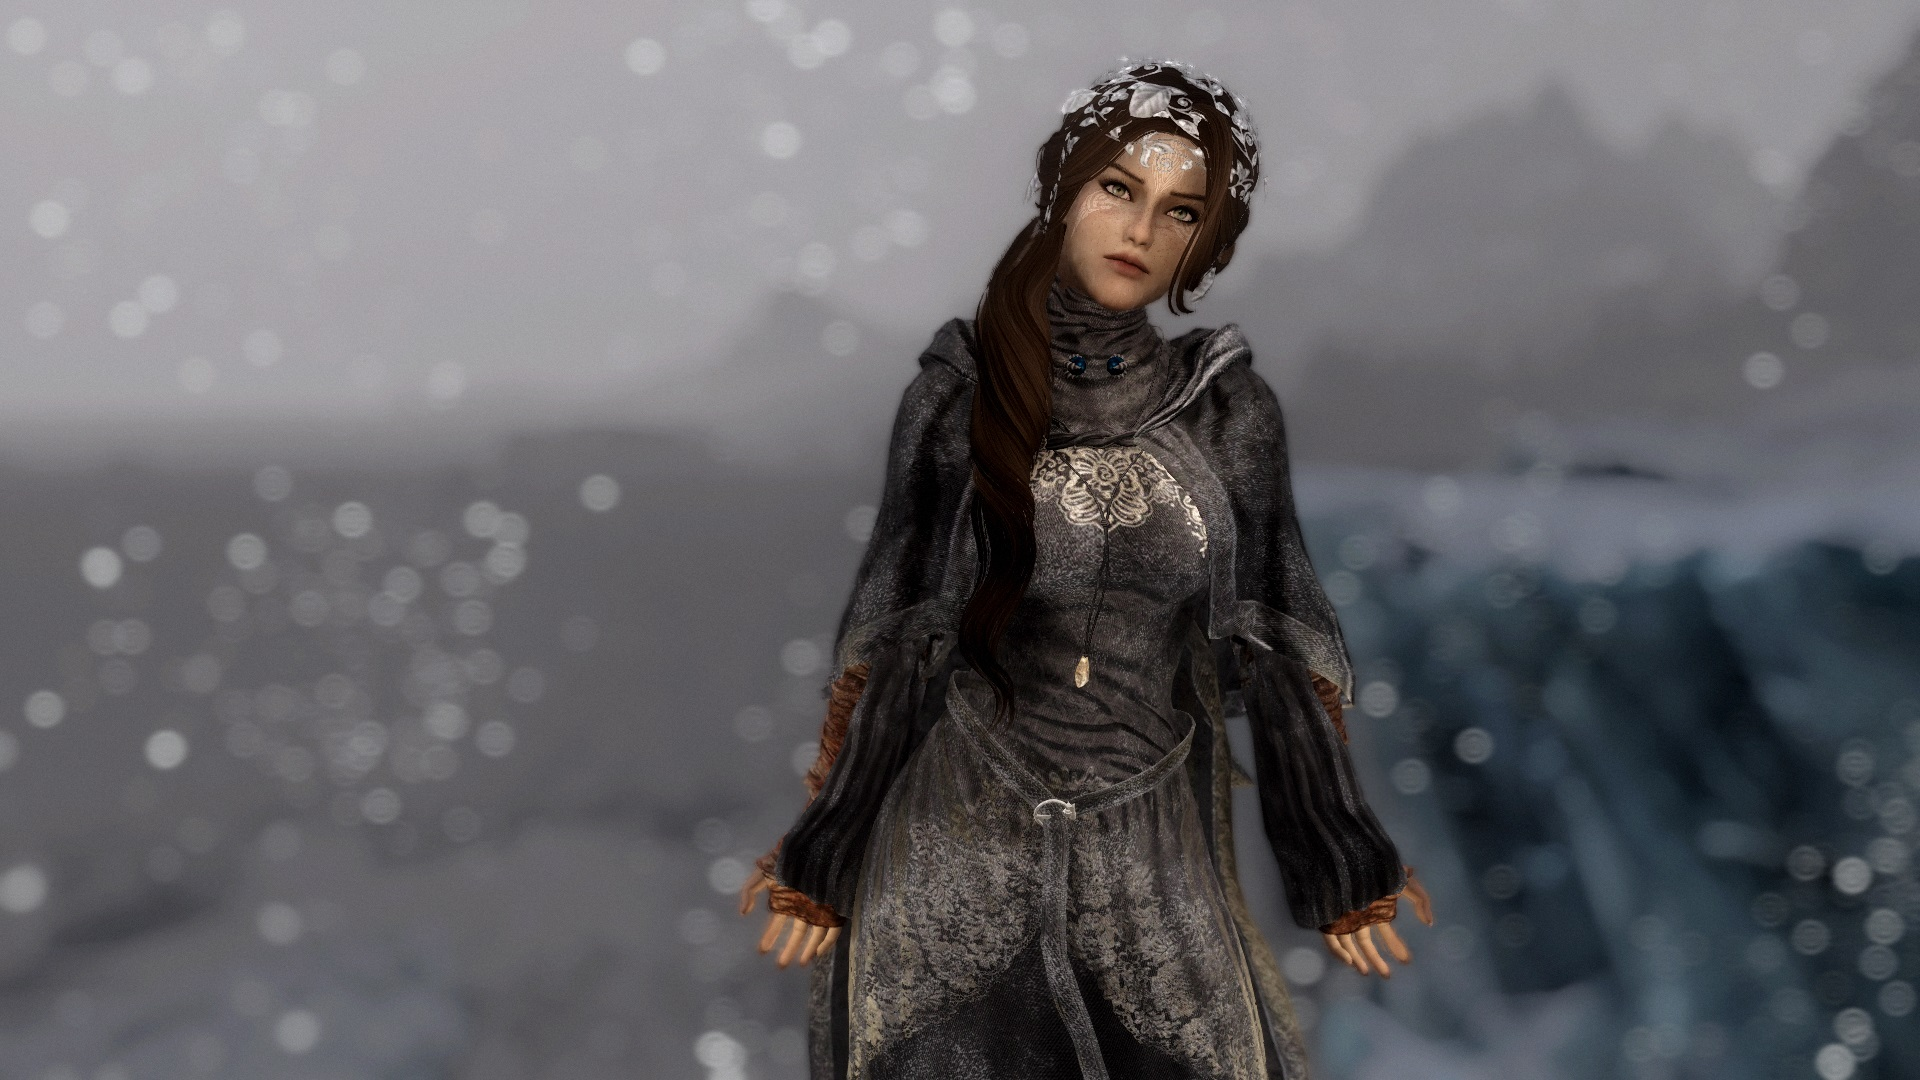 Firekeeper Cassandra at Skyrim Nexus - mods and community